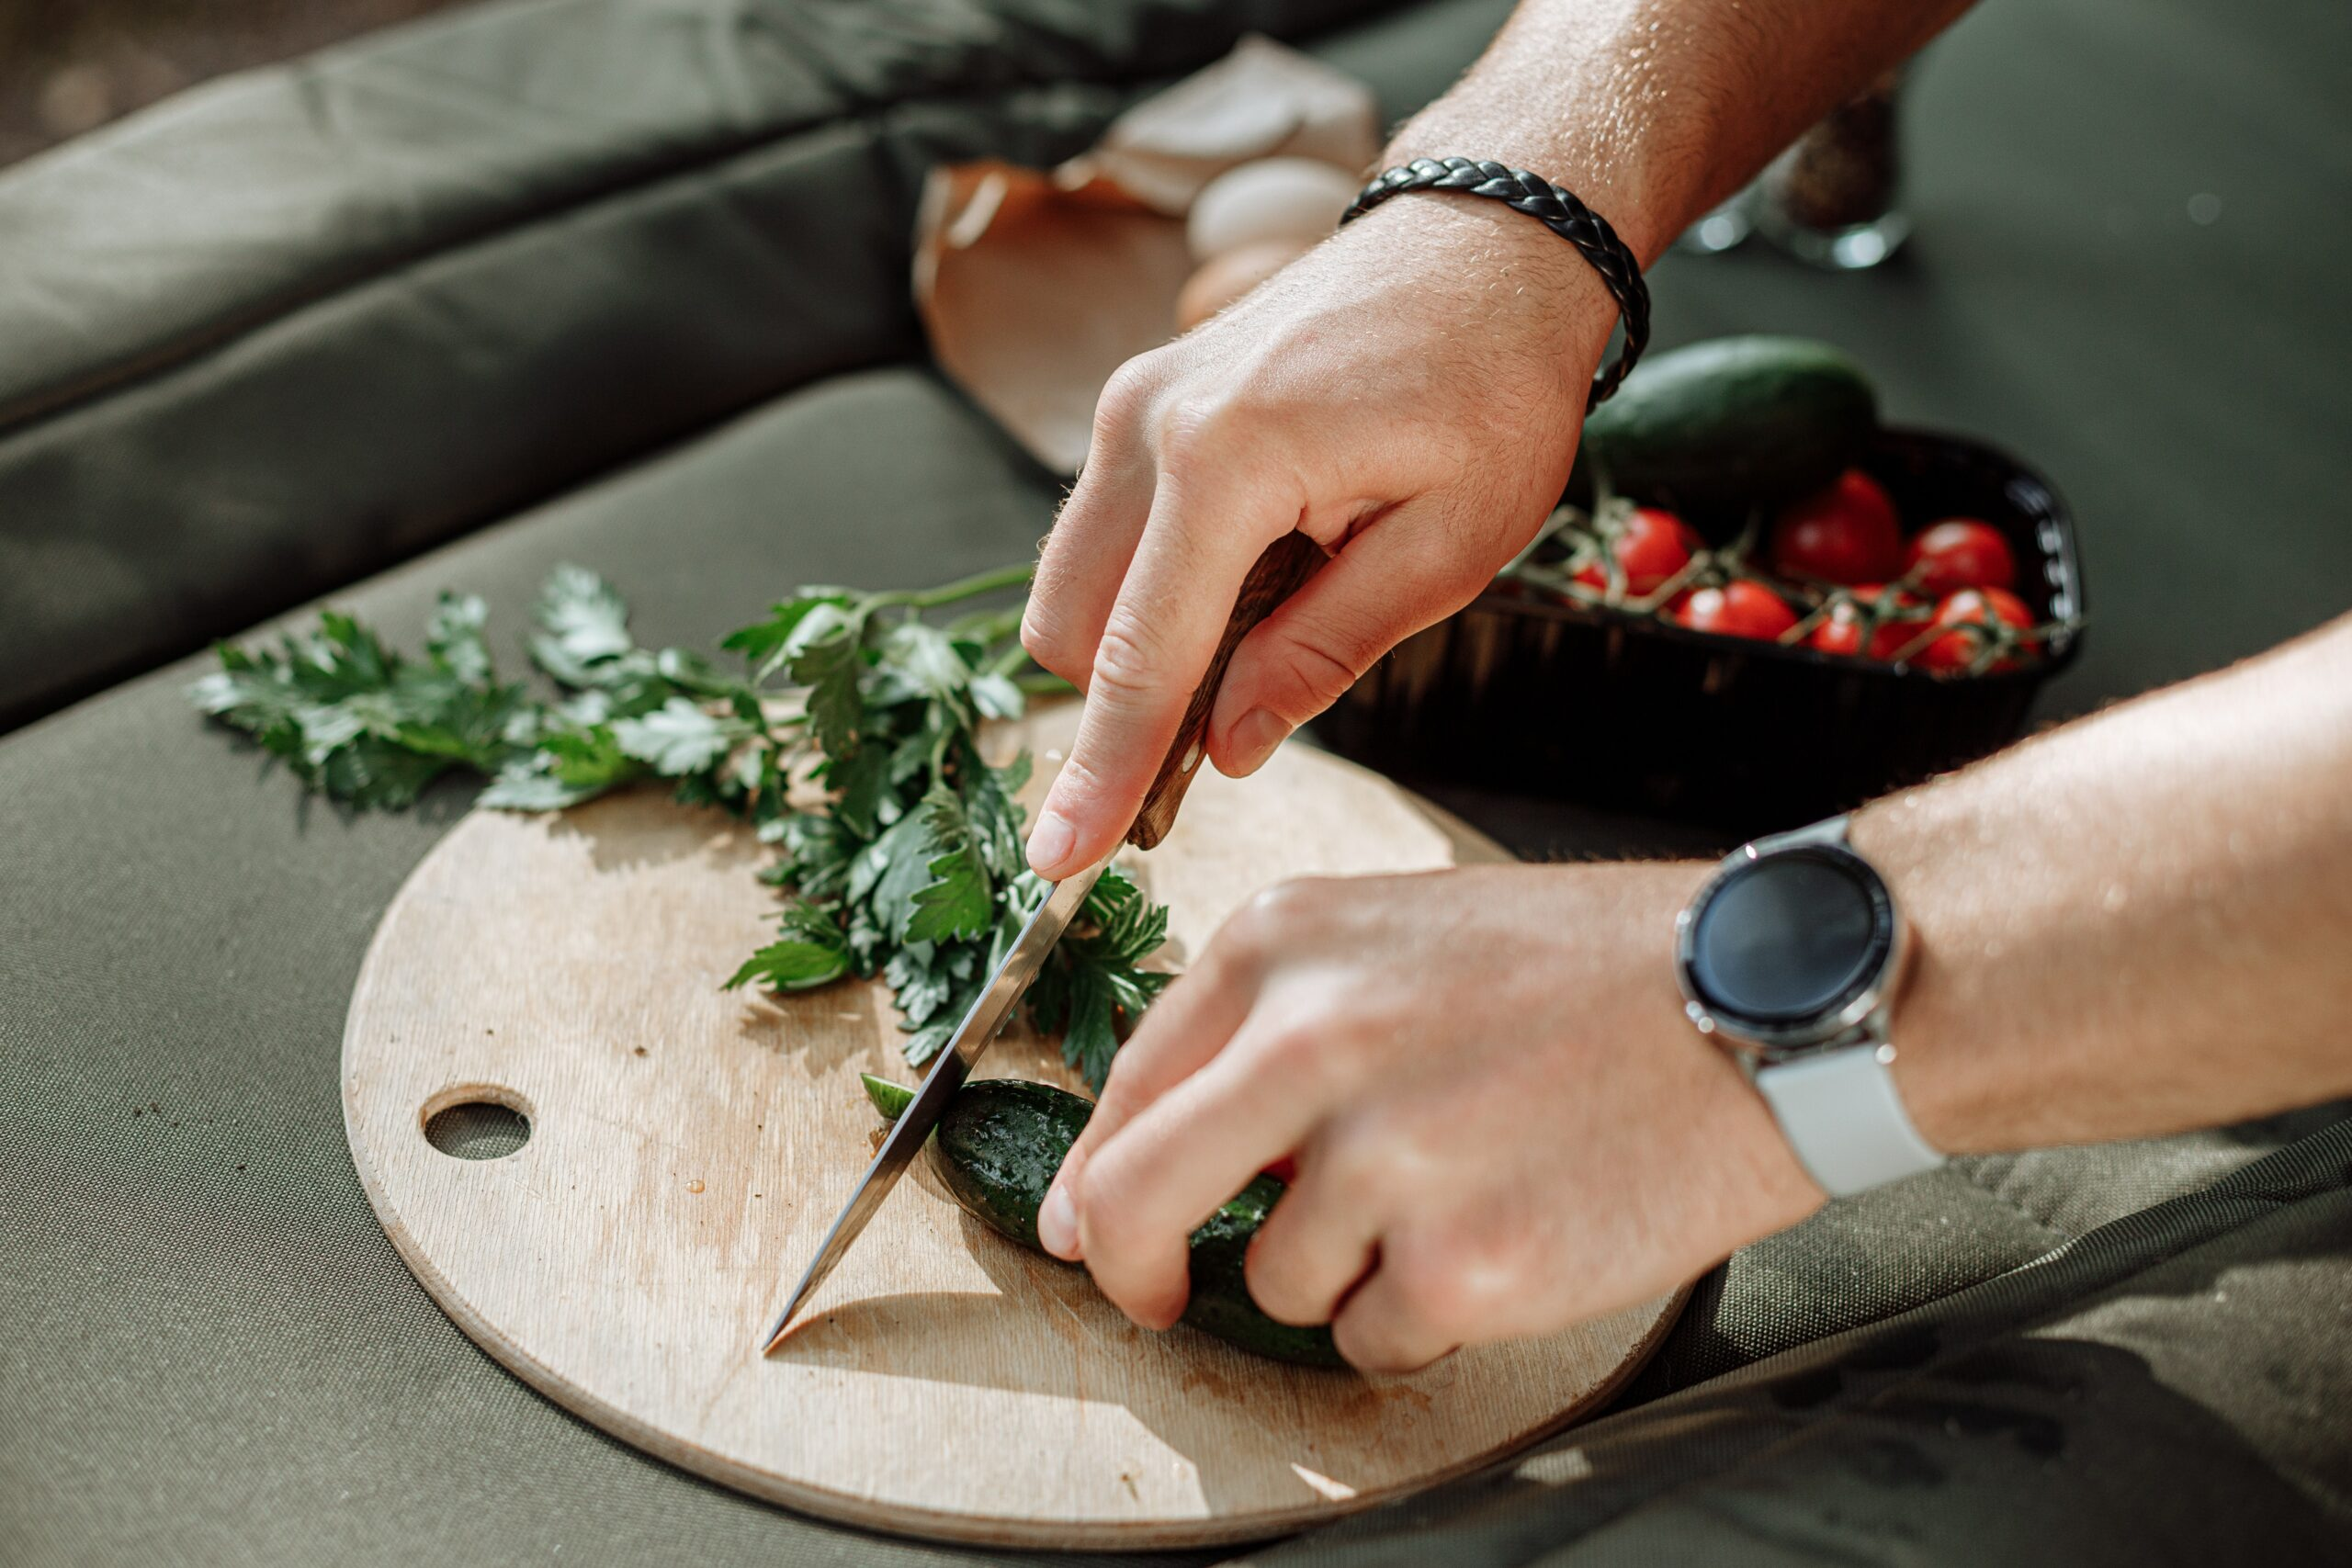 a smartwatch on a man's hand while cooking